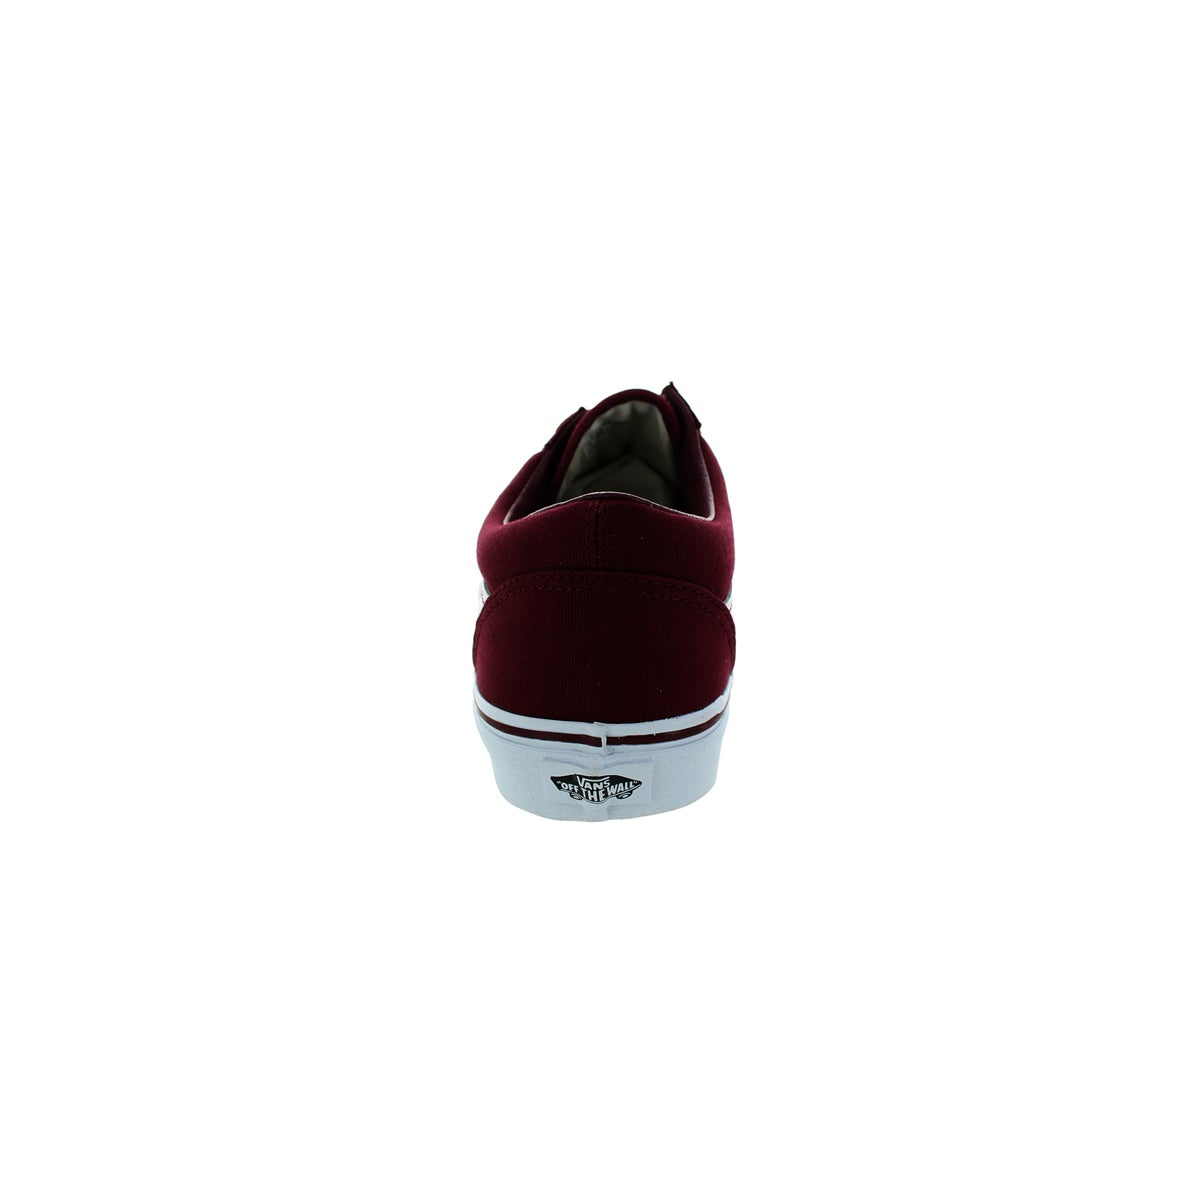 829fa28885 Shop Vans Unisex Old Skool Cordovan True White Canvas Skate Shoe - Free  Shipping Today - Overstock - 13395078